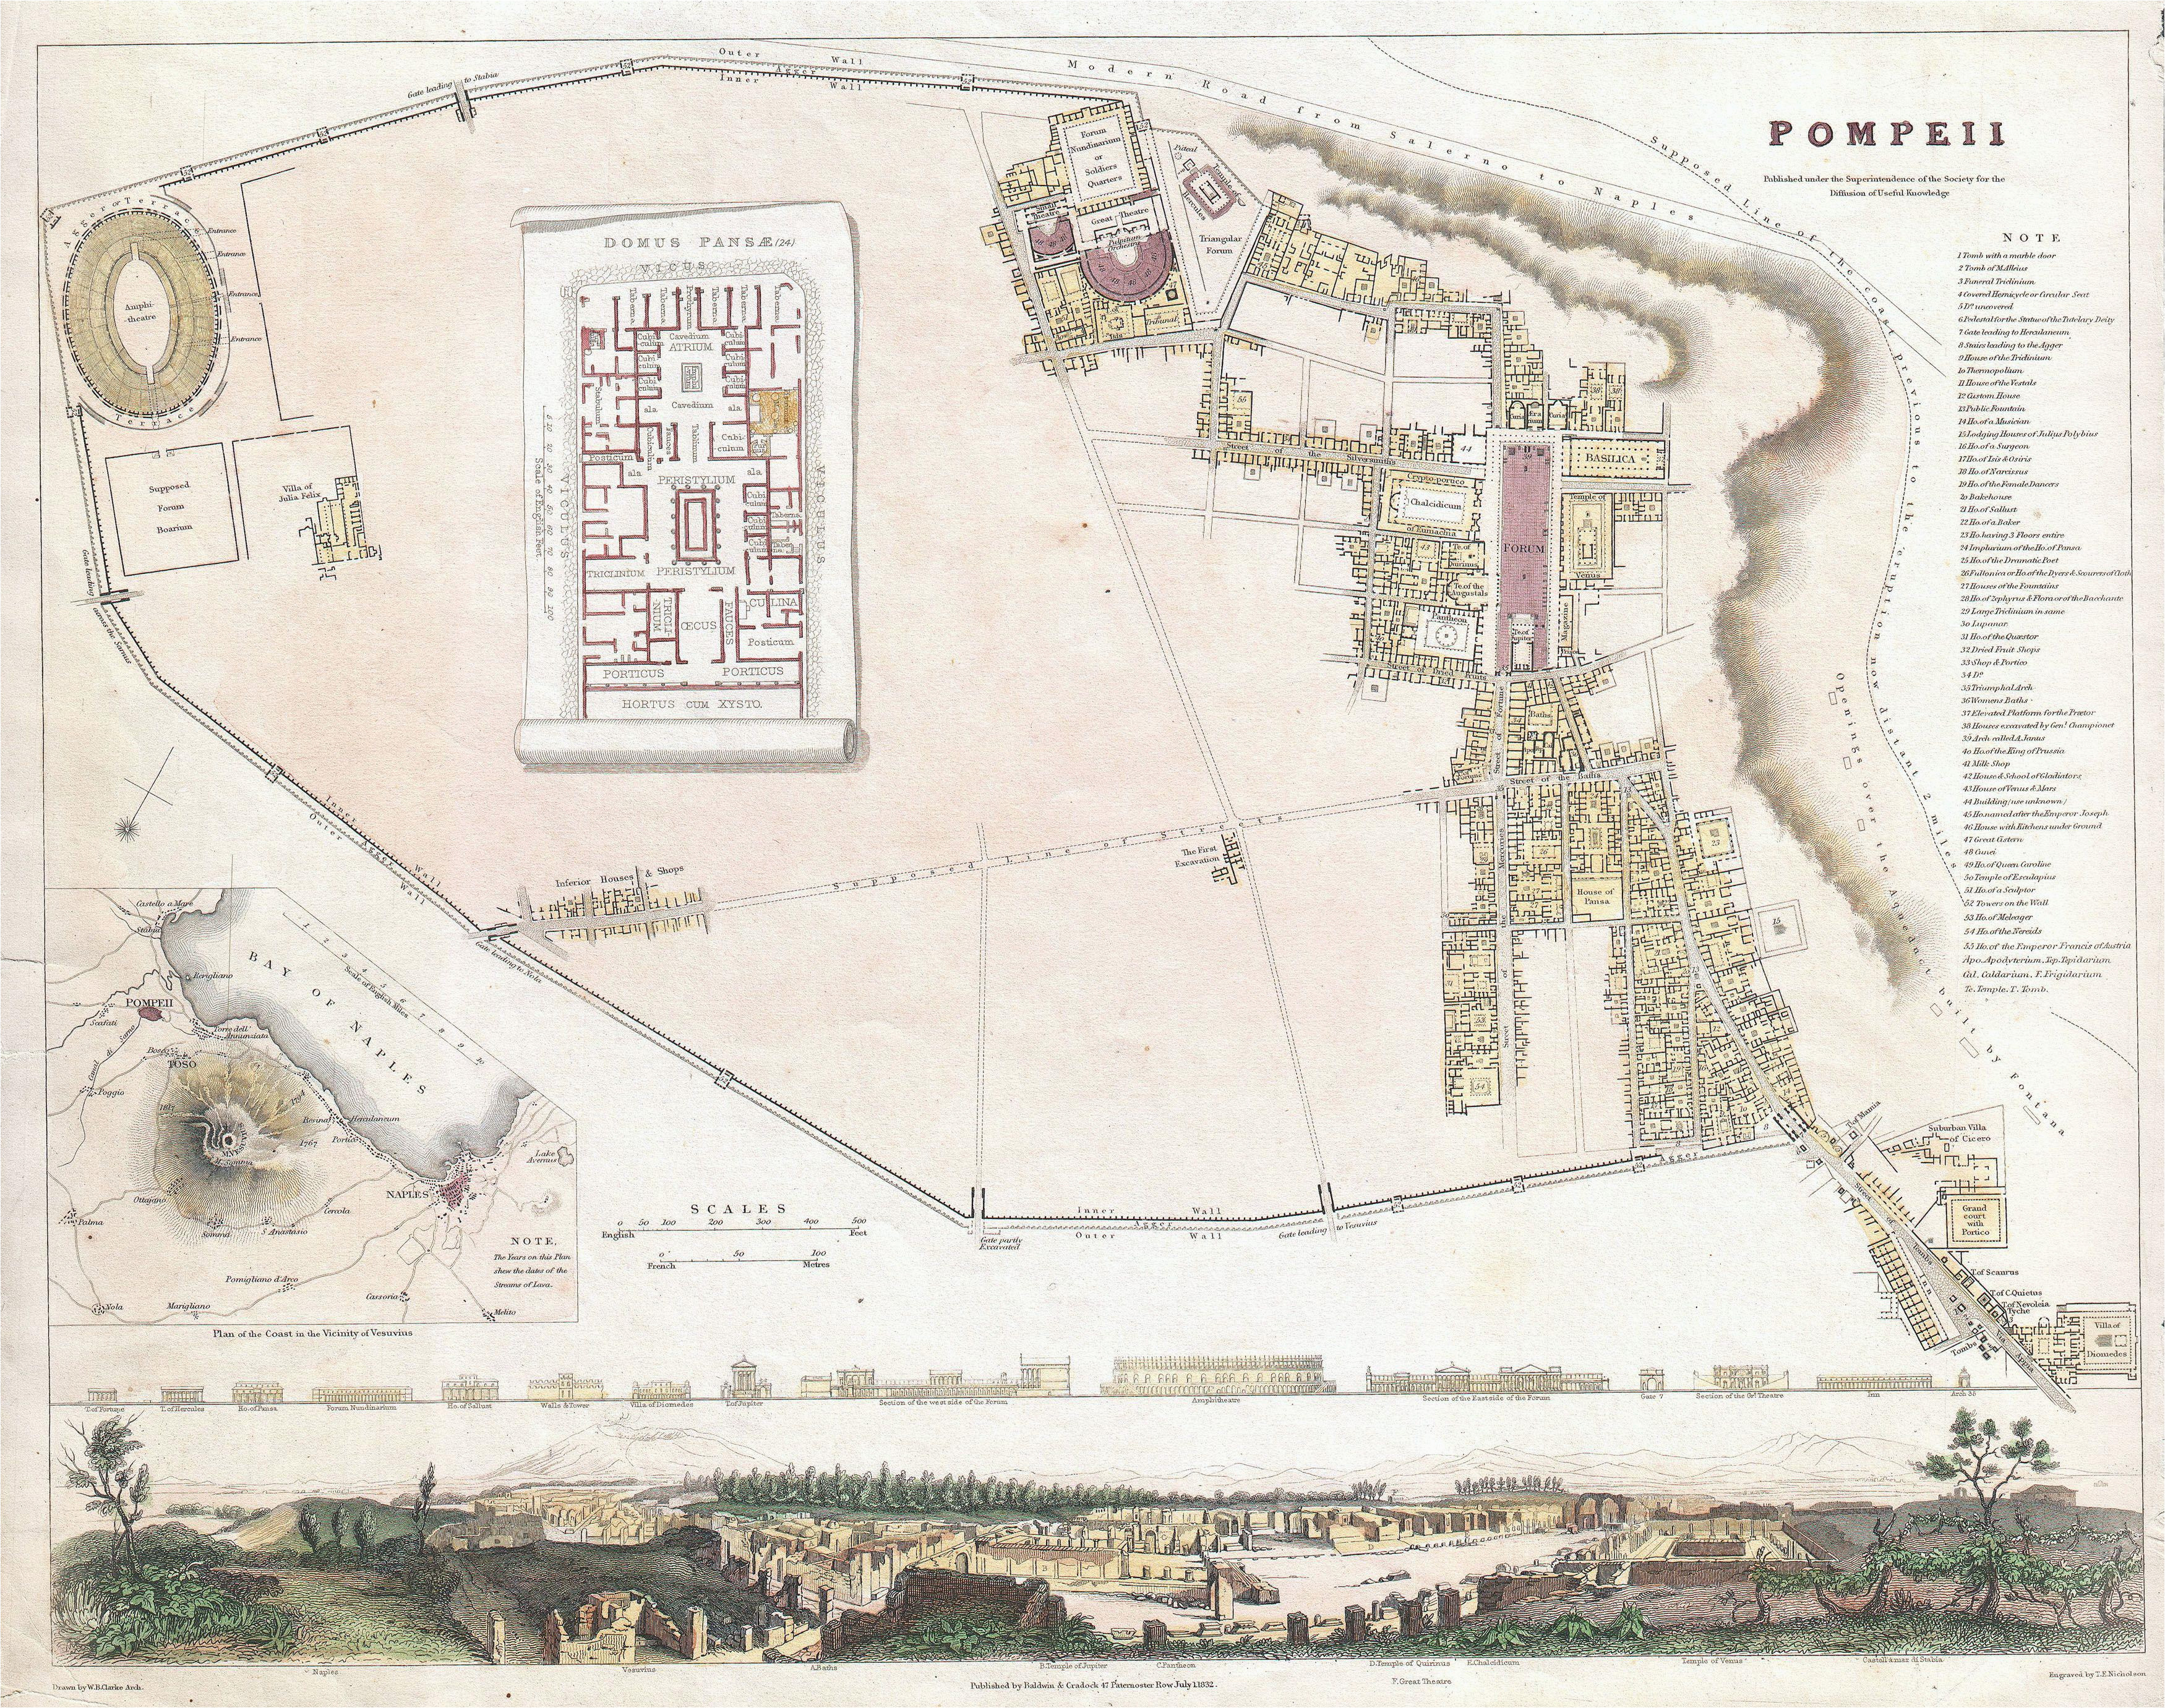 Pompei Italy Map File 1832 S D U K City Plan or Map Of Pompeii Italy Geographicus